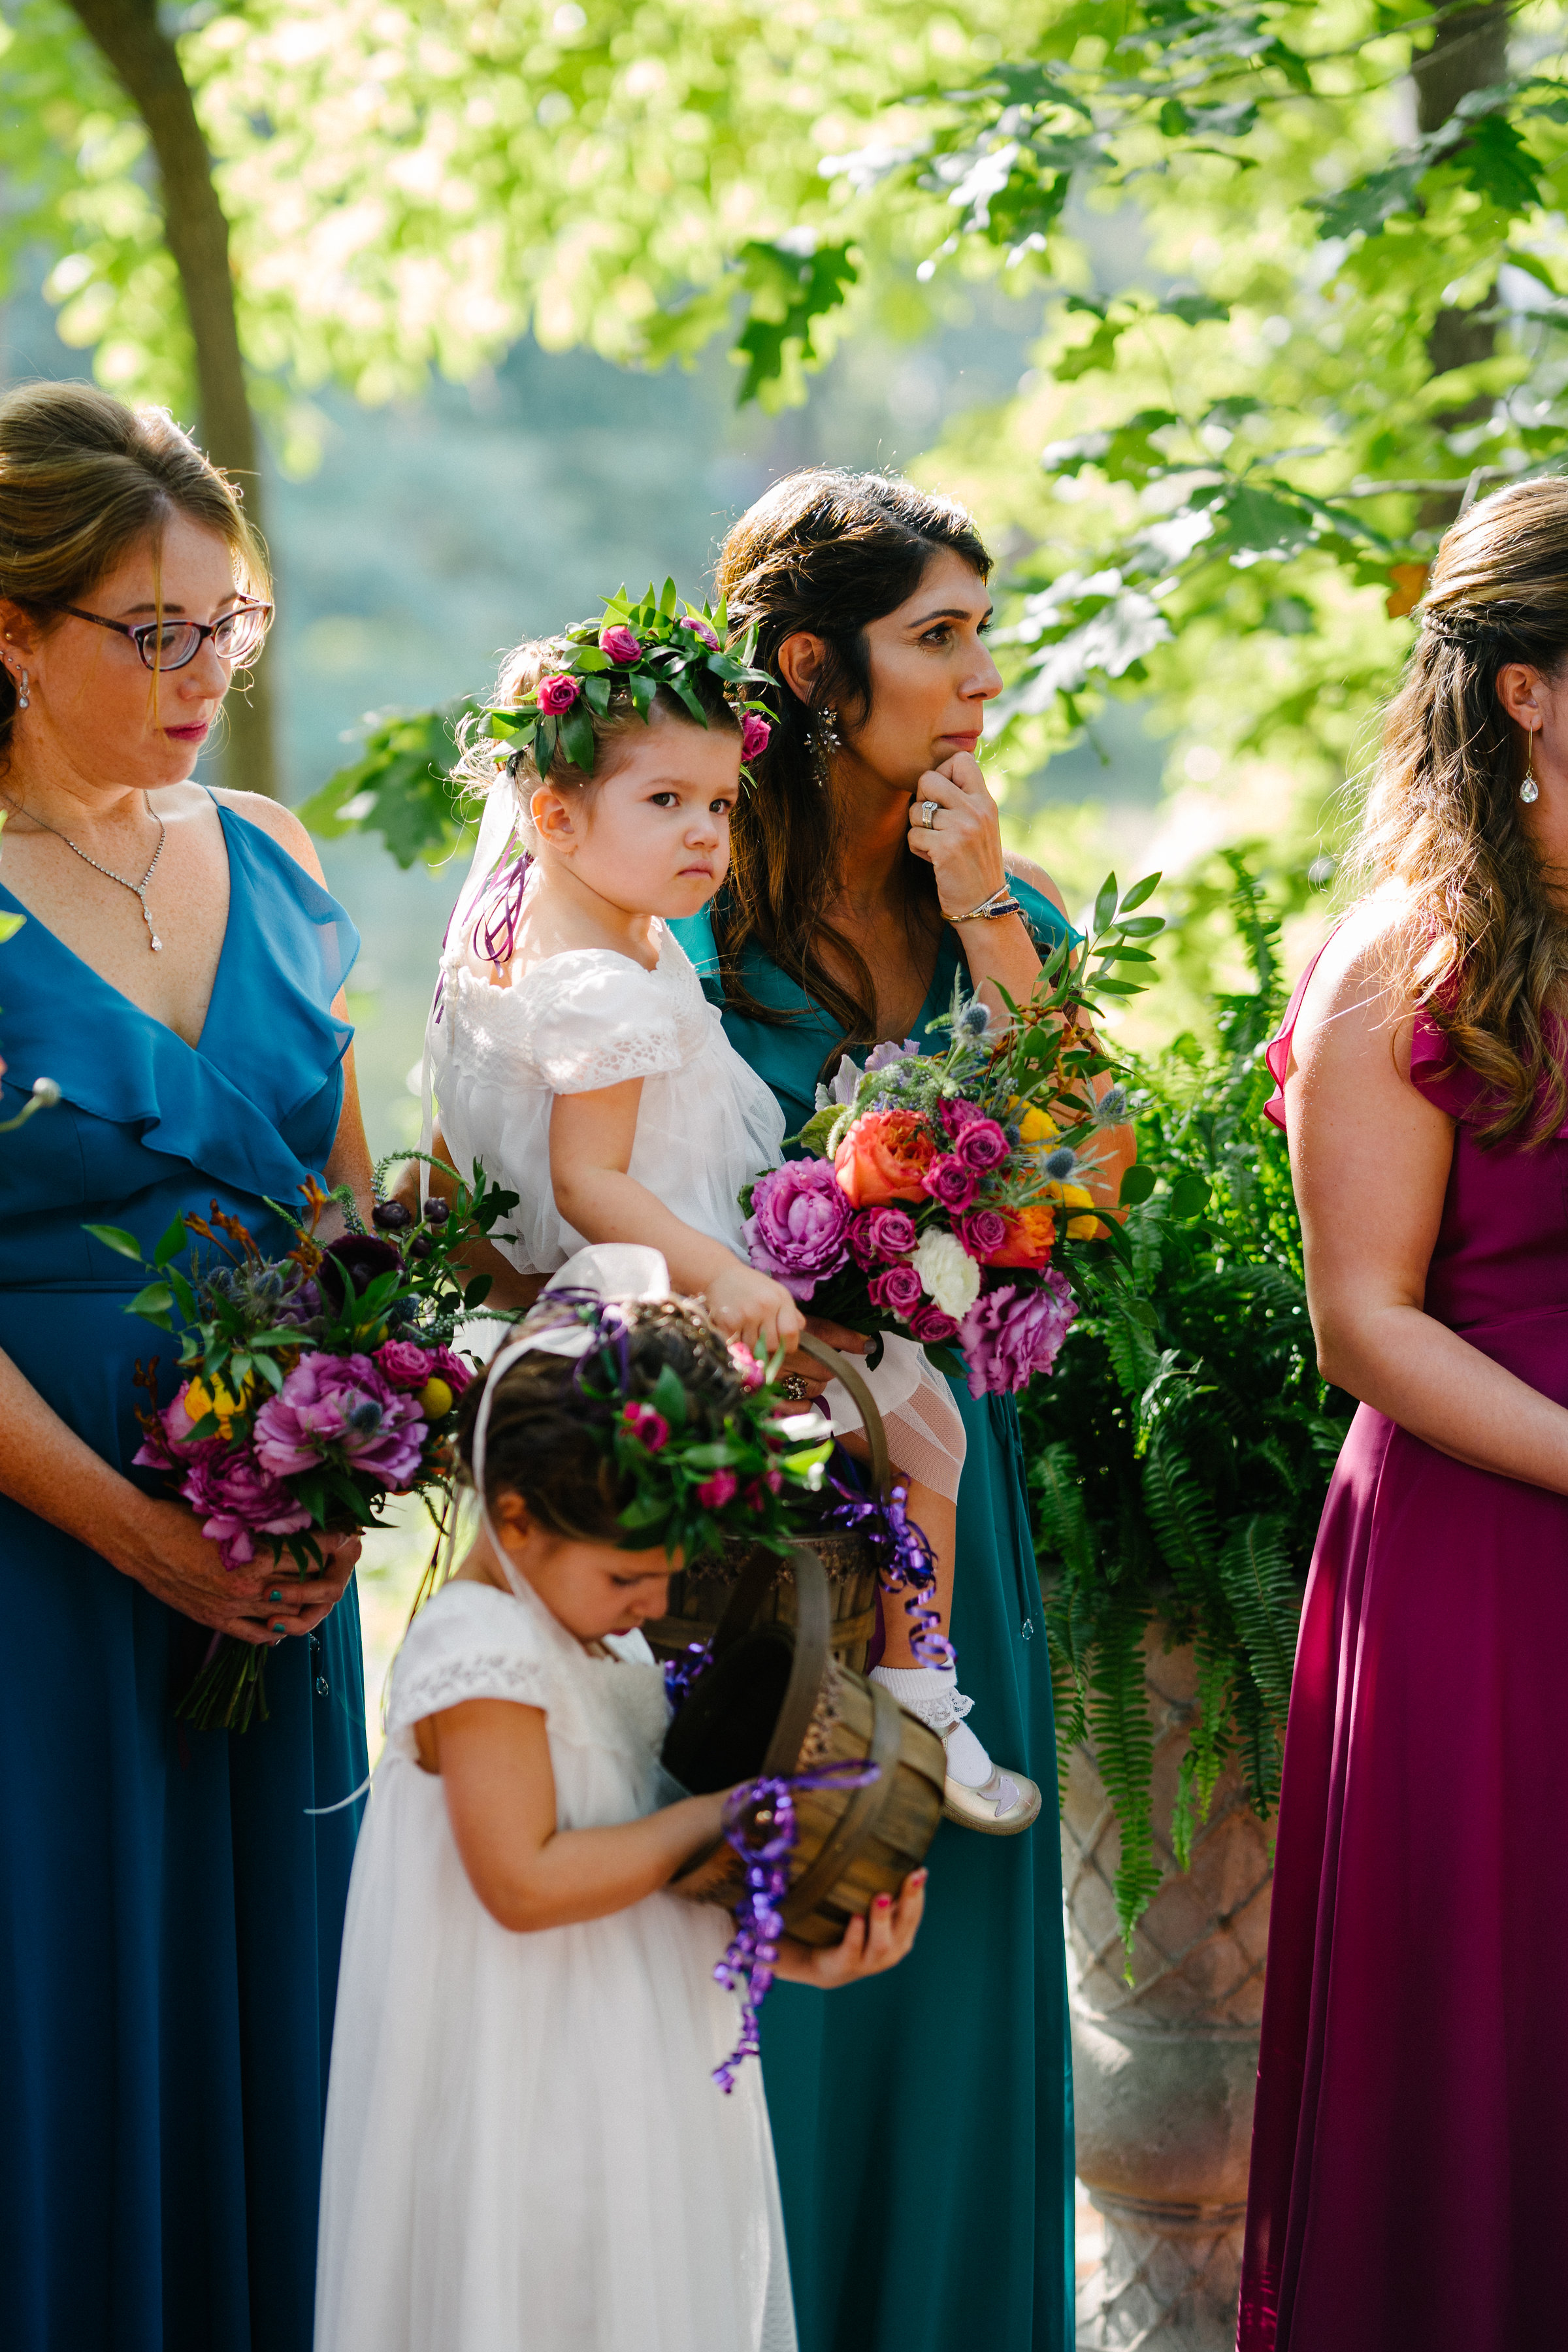 Katelin_Cobey_Raleigh_Garden_Wedding_2016-152.jpg